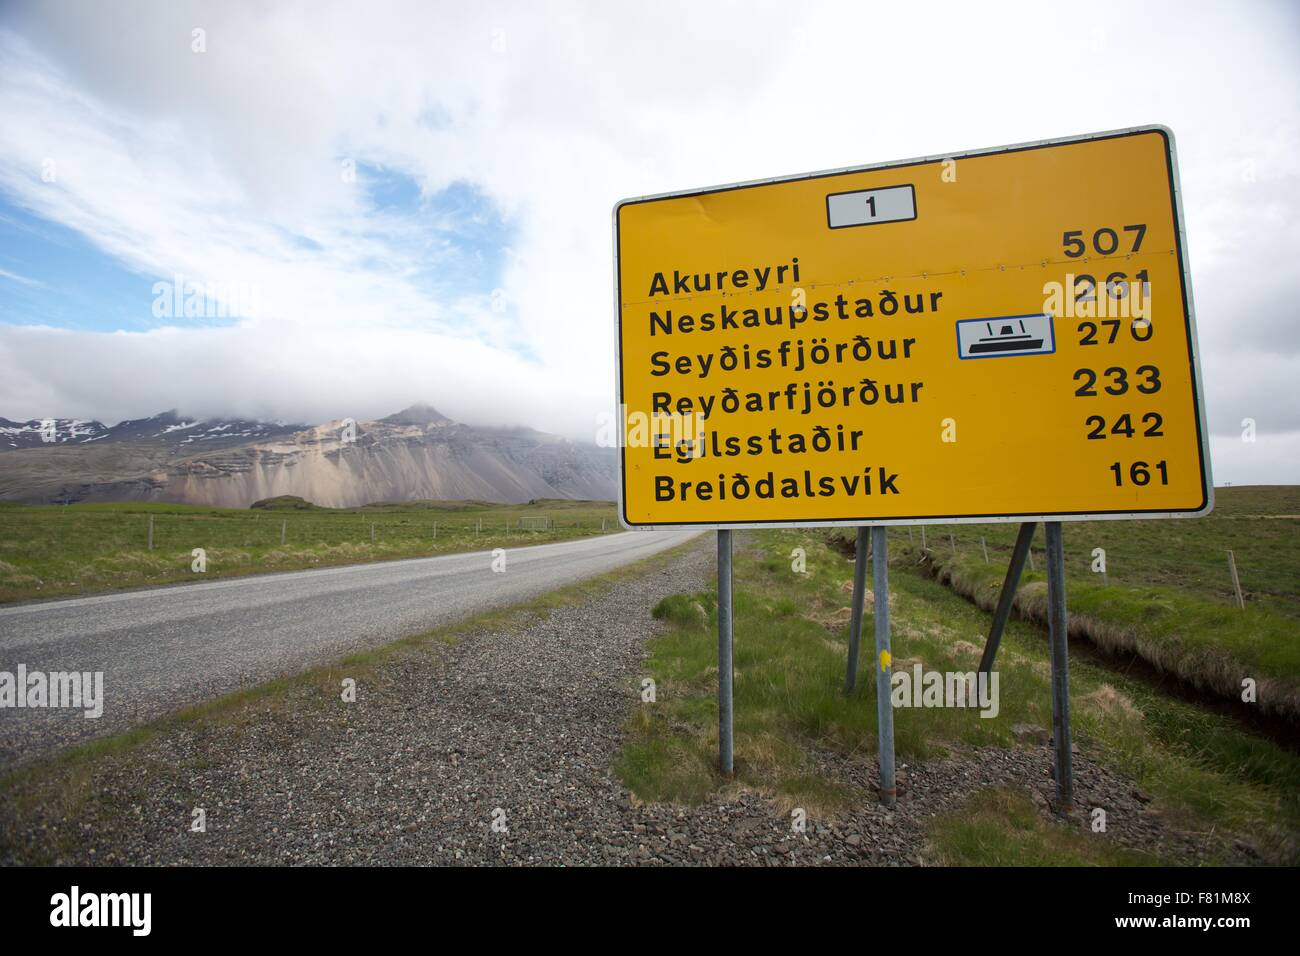 Road sign showing distances in Iceland - Stock Image